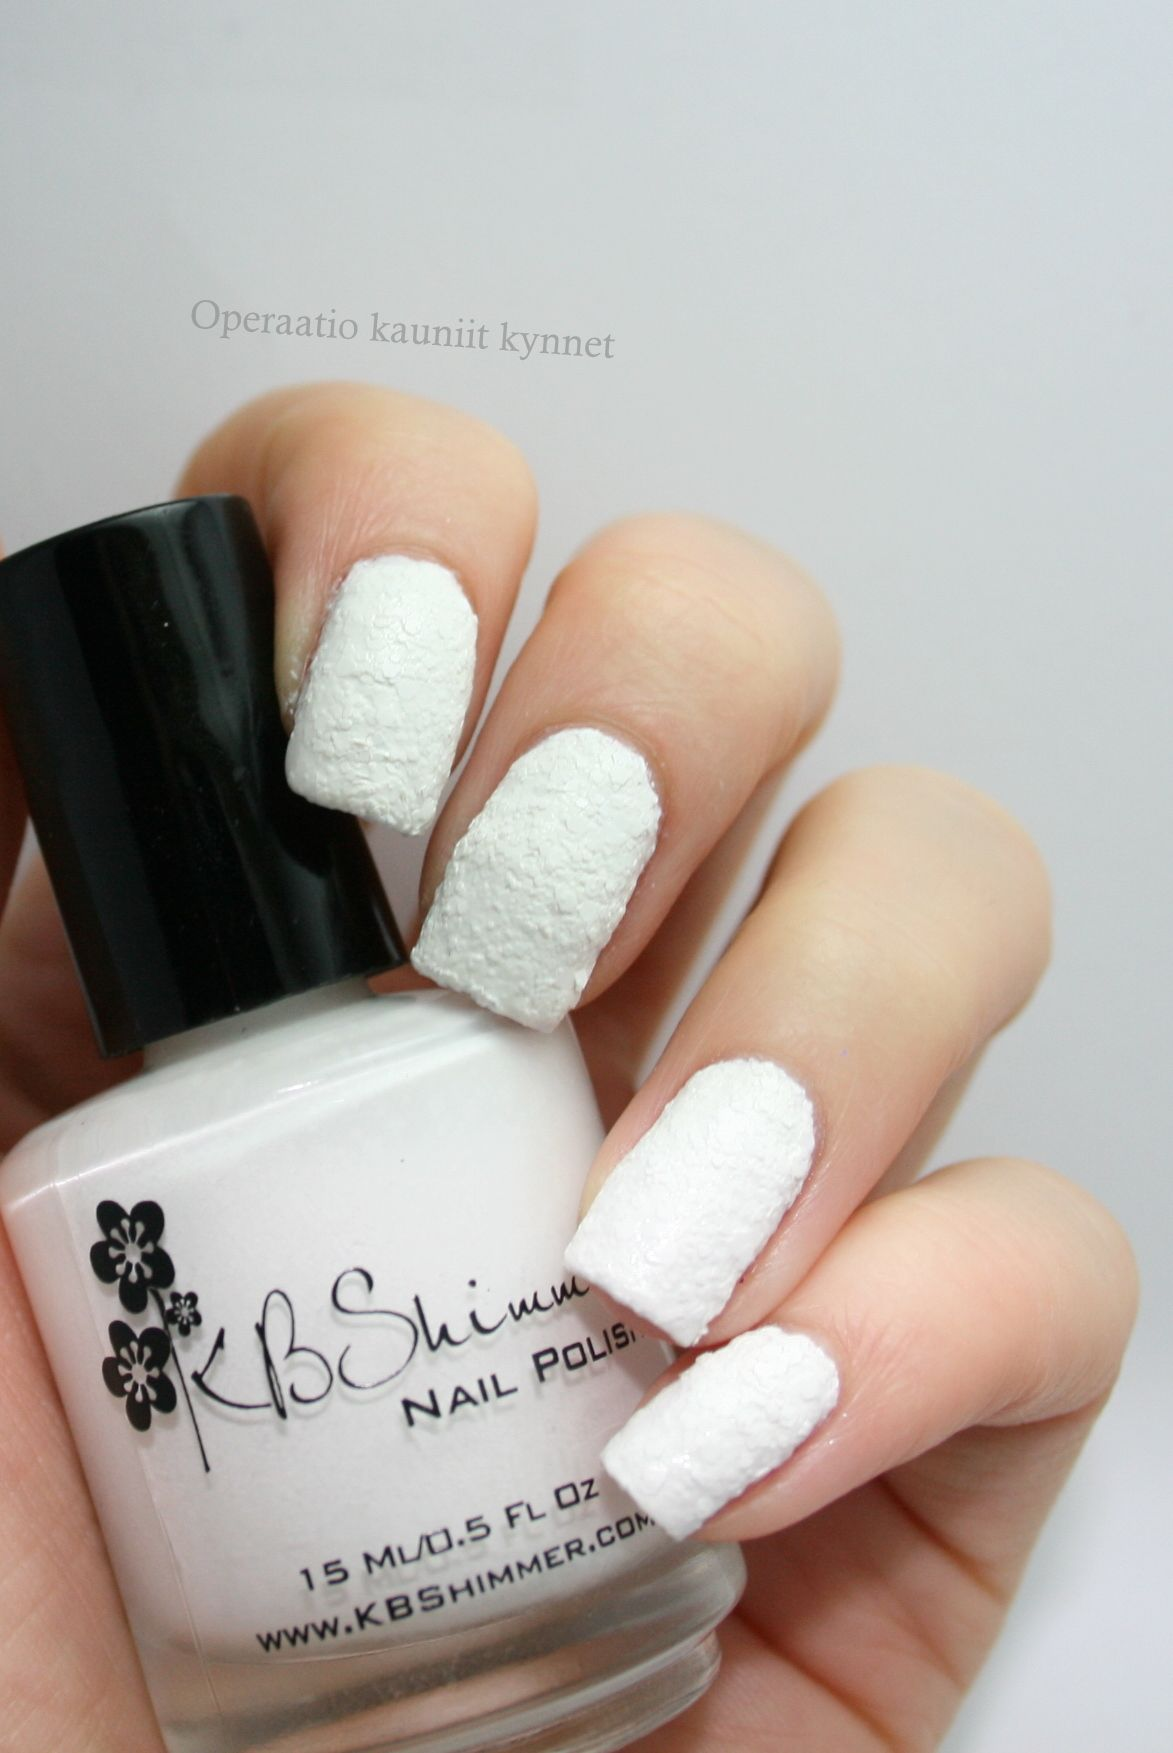 KBShimmer - White Here, White Now